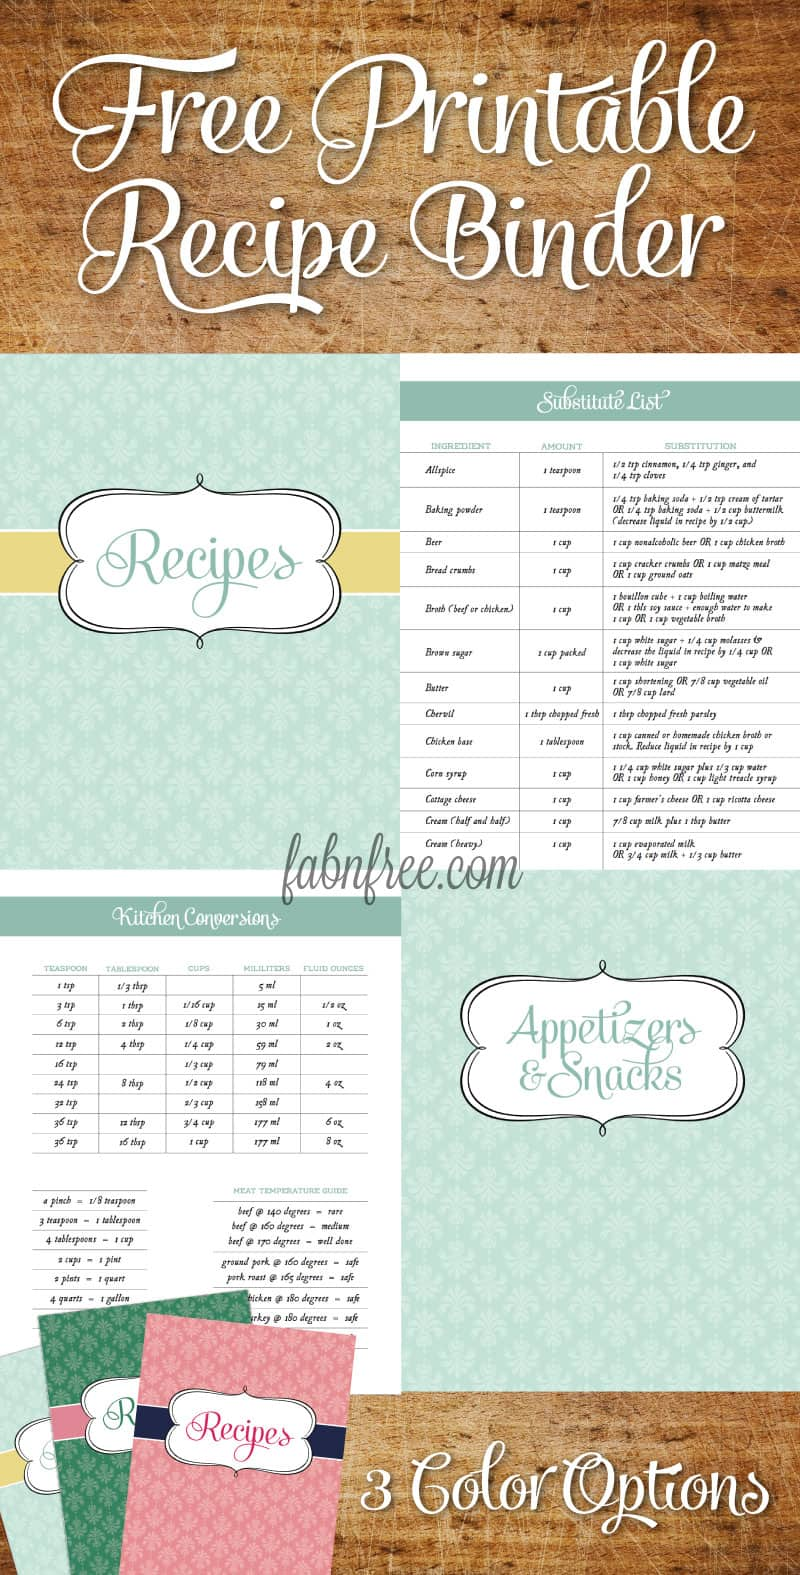 Lucrative image with printable cookbook